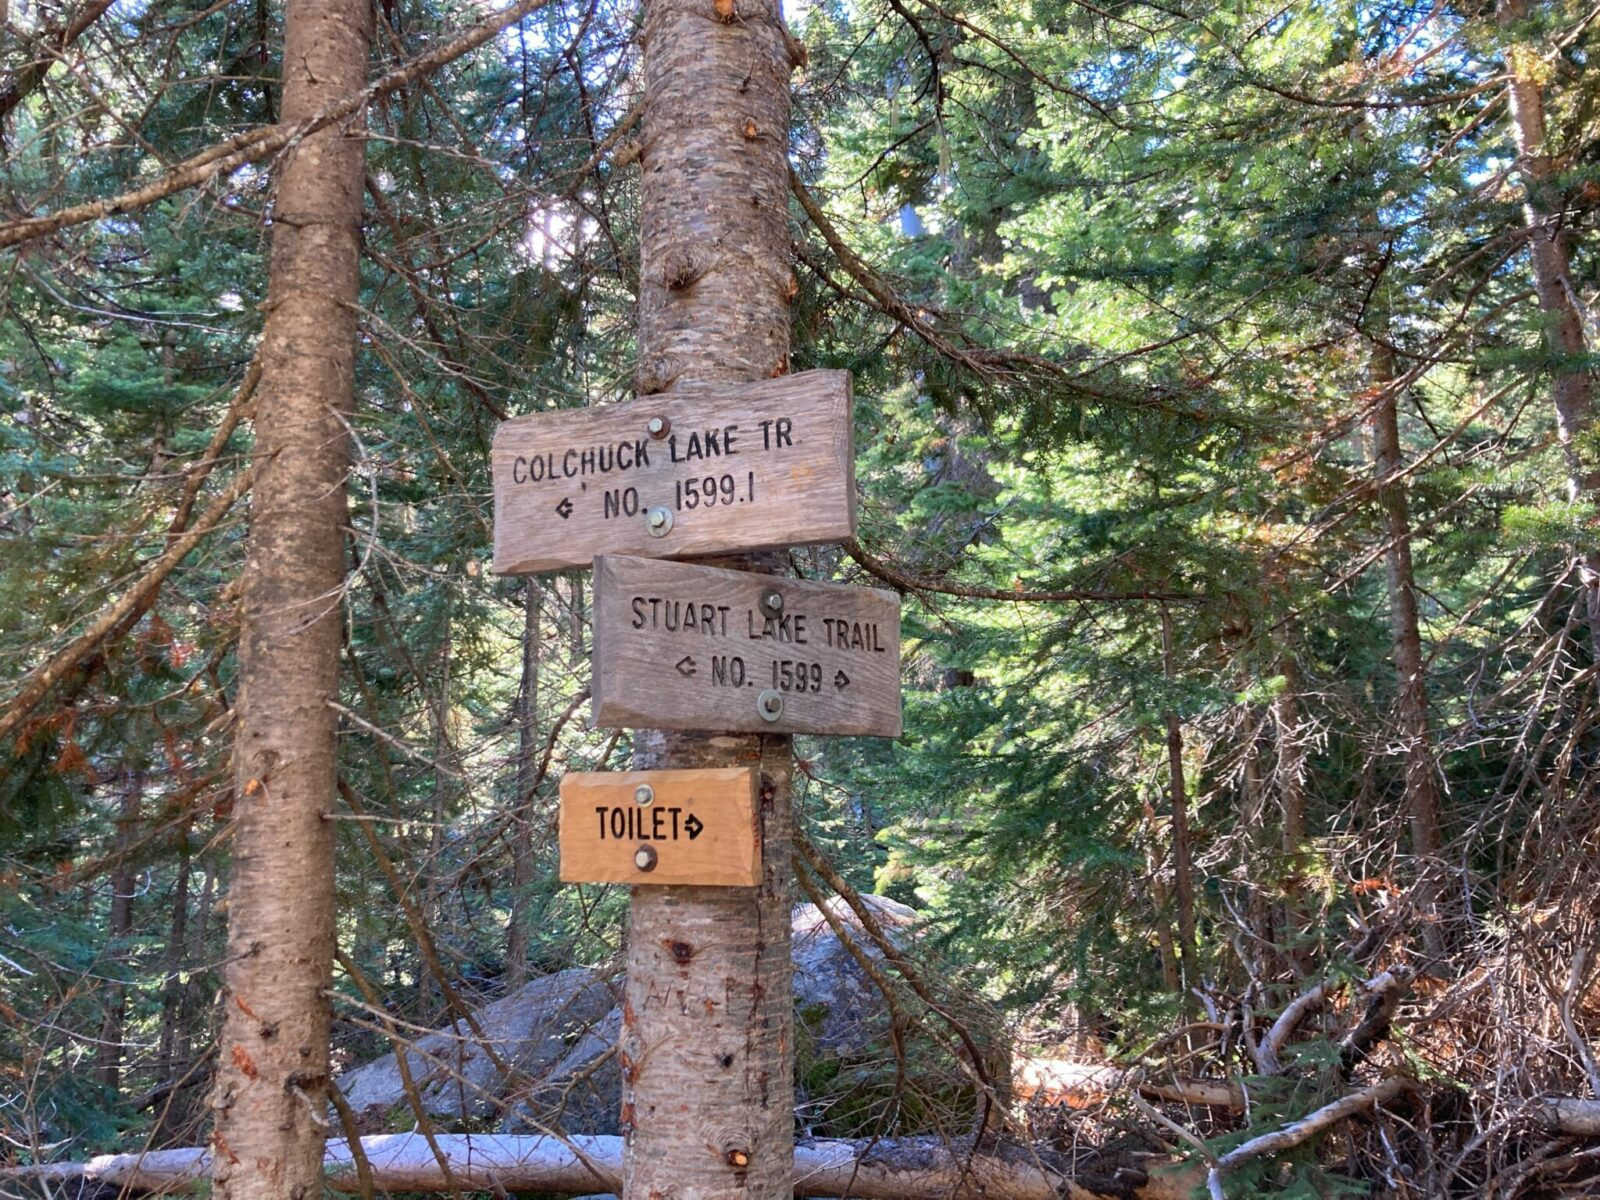 """A tree in the forest with three wooden signs attached to it. One says """"Colchuck Lake Trail"""" with an arrow to the left, one says """"Stuart Lake Trail"""" with an arrow going right and one going left, and one says """"toilet"""" with an arrow to the right"""